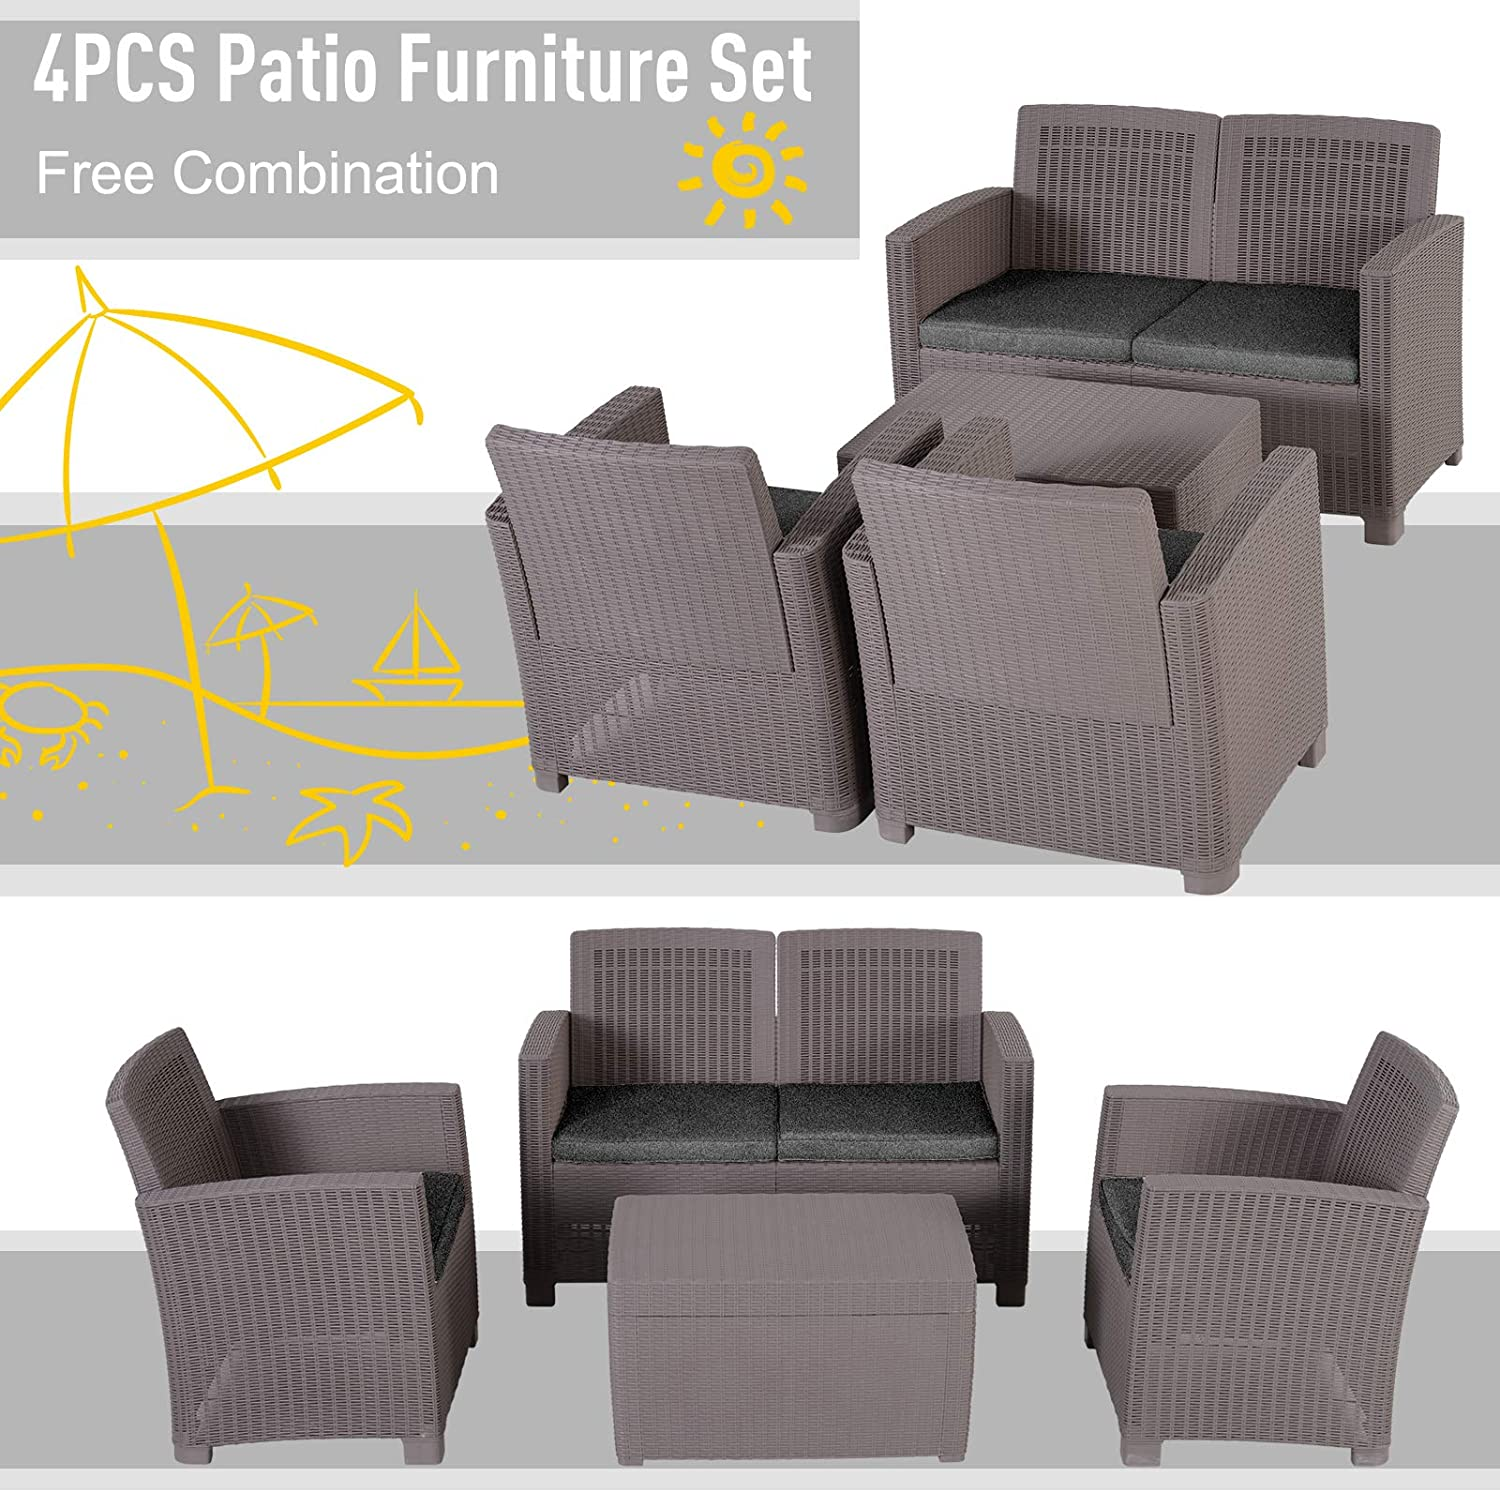 Grey Outsunny Garden PP Rattan Style Sofa Table Set 4 Seater Outdoor Patio 2 Single Chairs /& 1 Bench Conservatory Furniture Cushioned